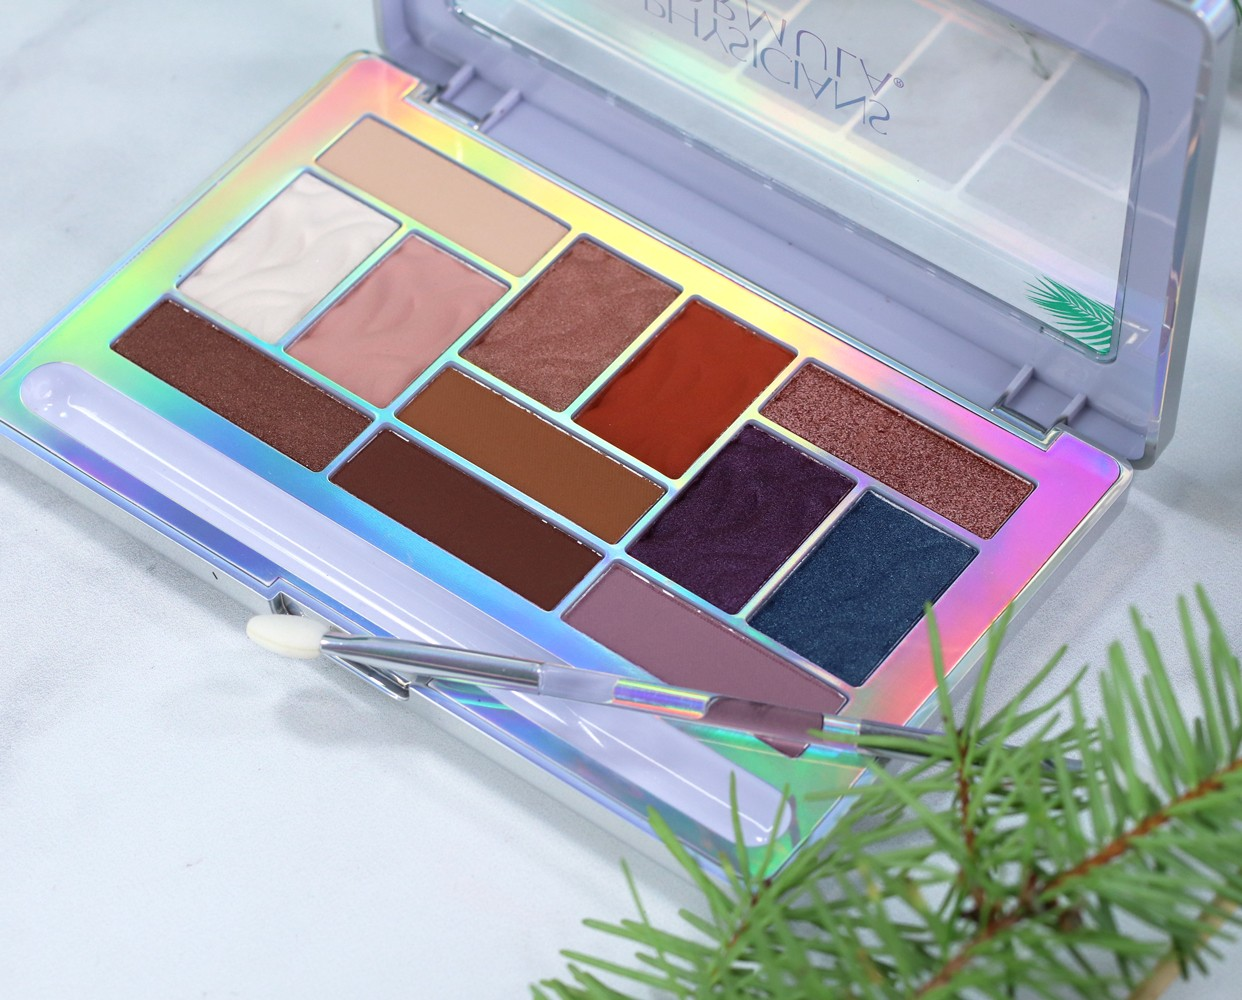 Physicians Formula Butter Eyeshadow Tropical Days Palette